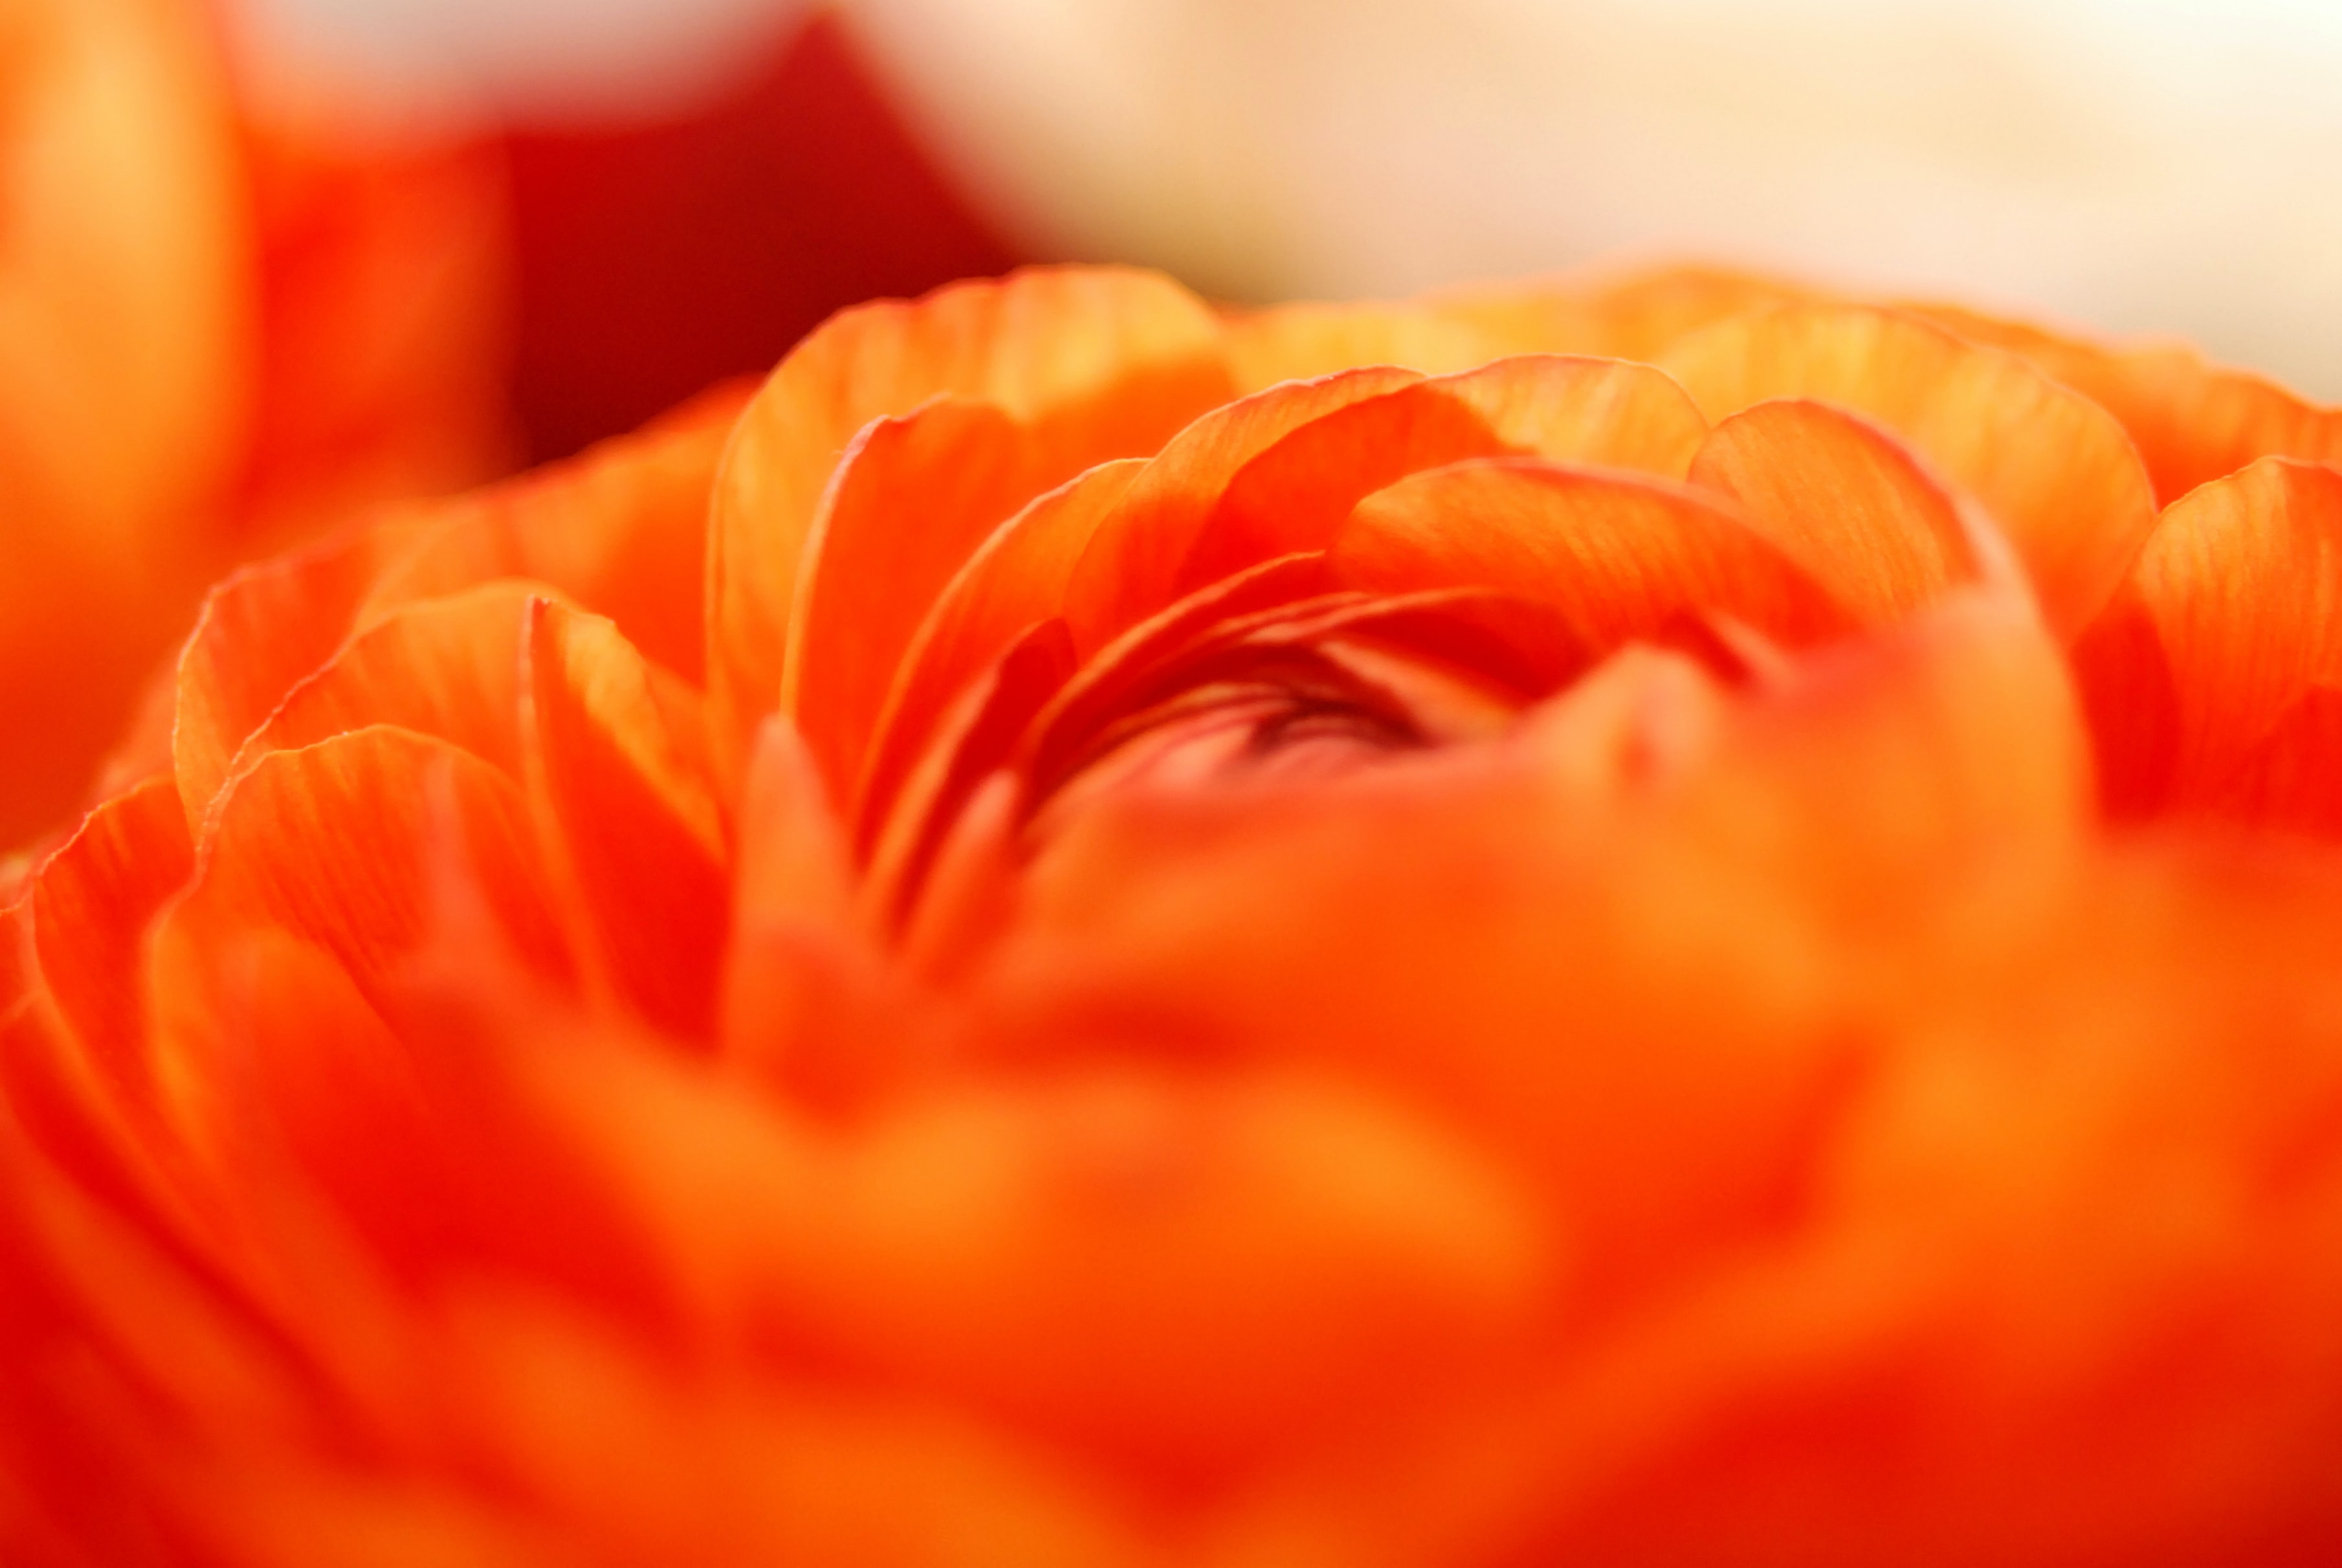 closeup photo of orange flower